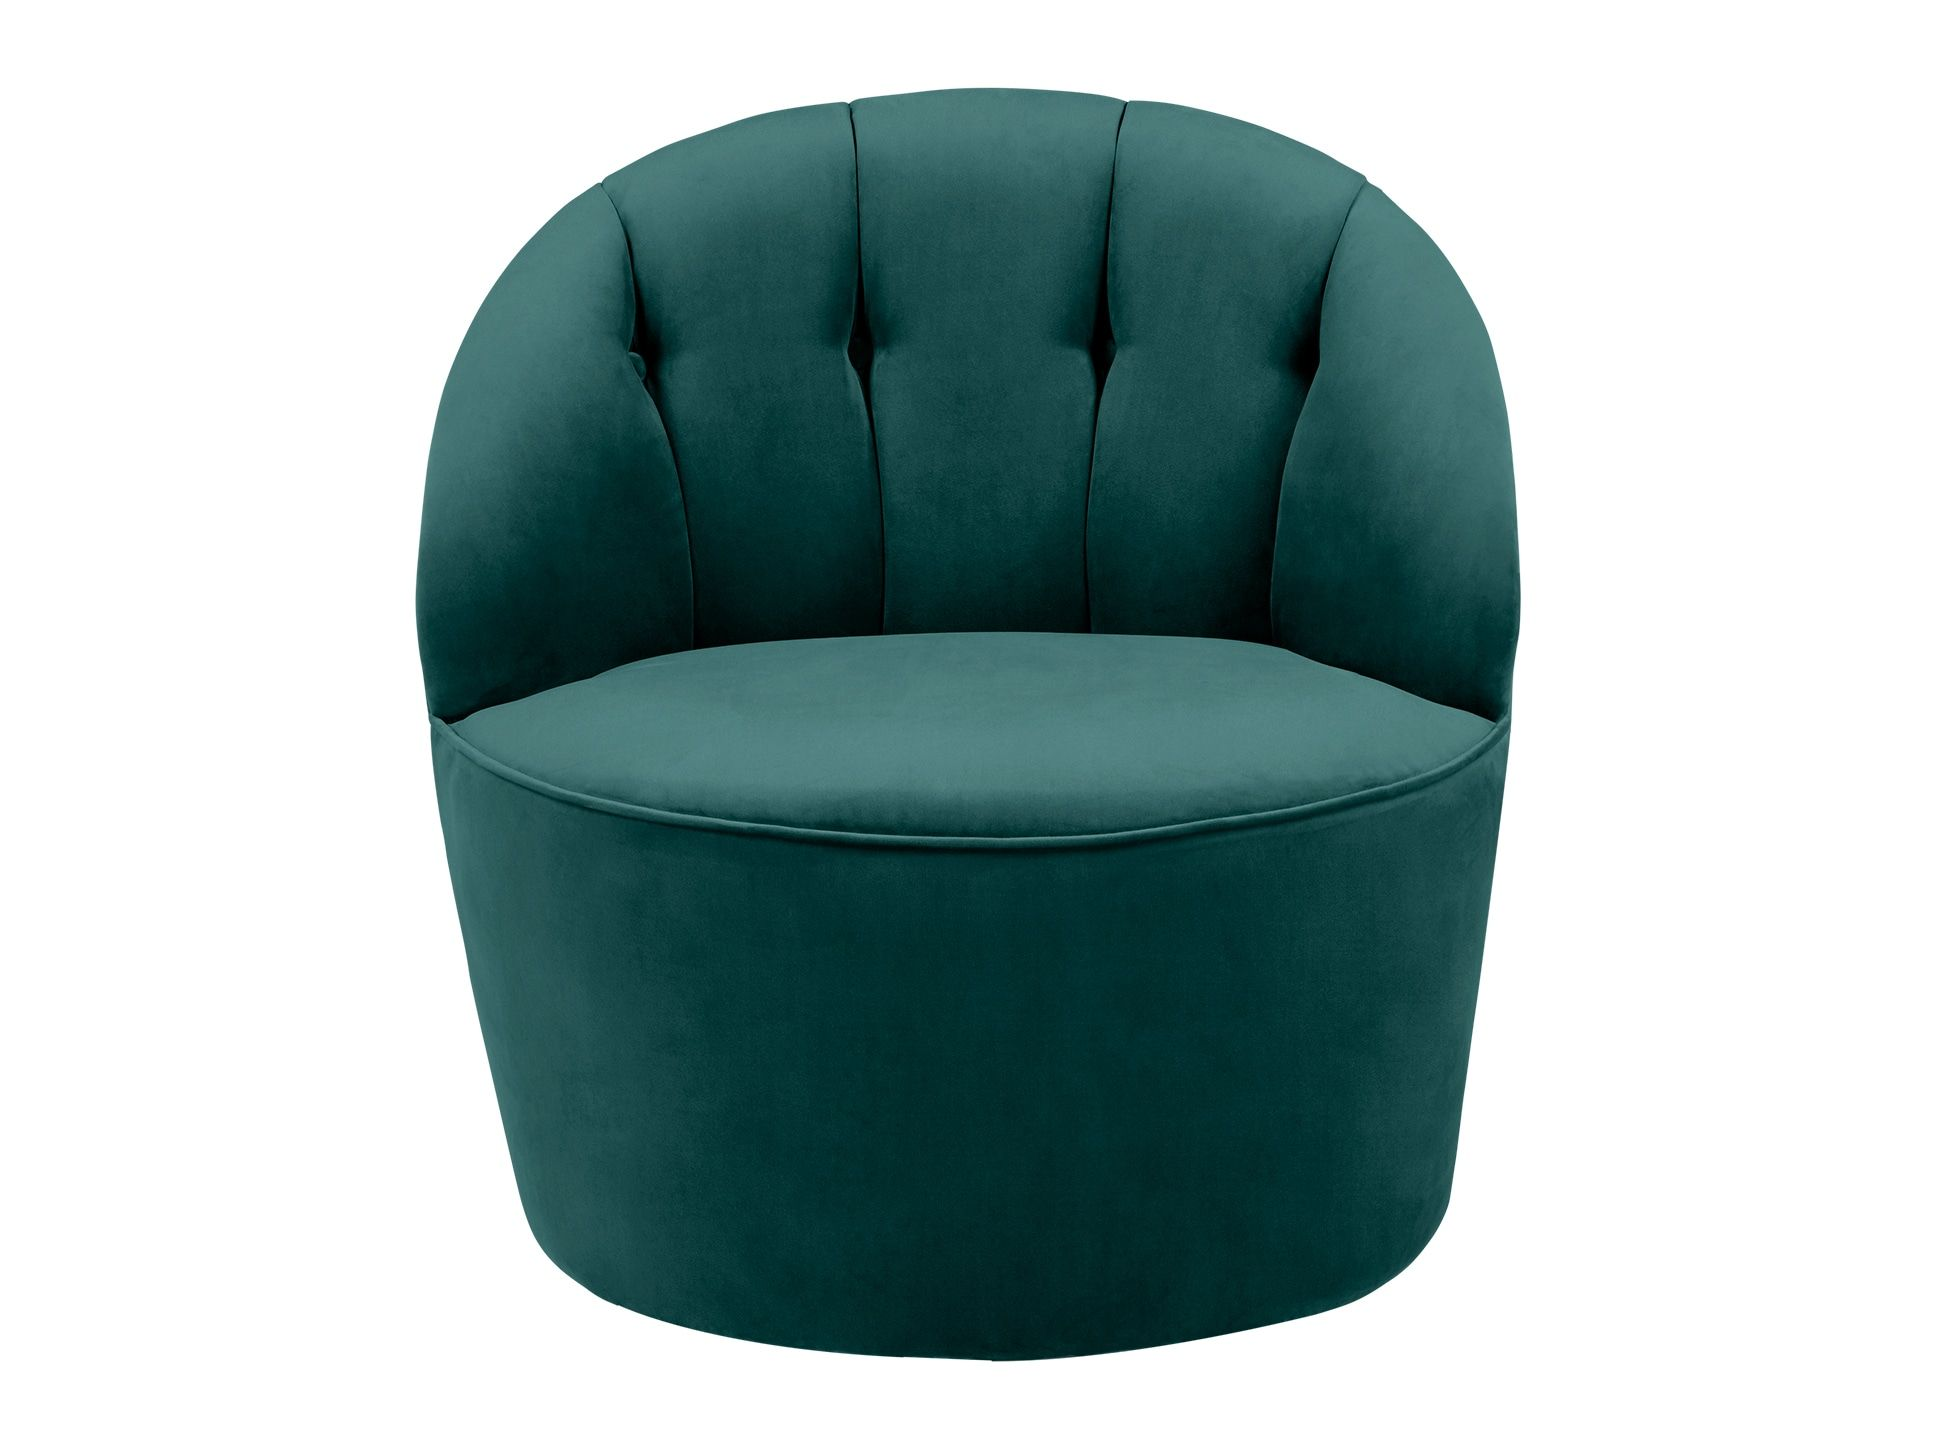 Made Peacock Blue Velvet Armchair Accent Chairs Chair